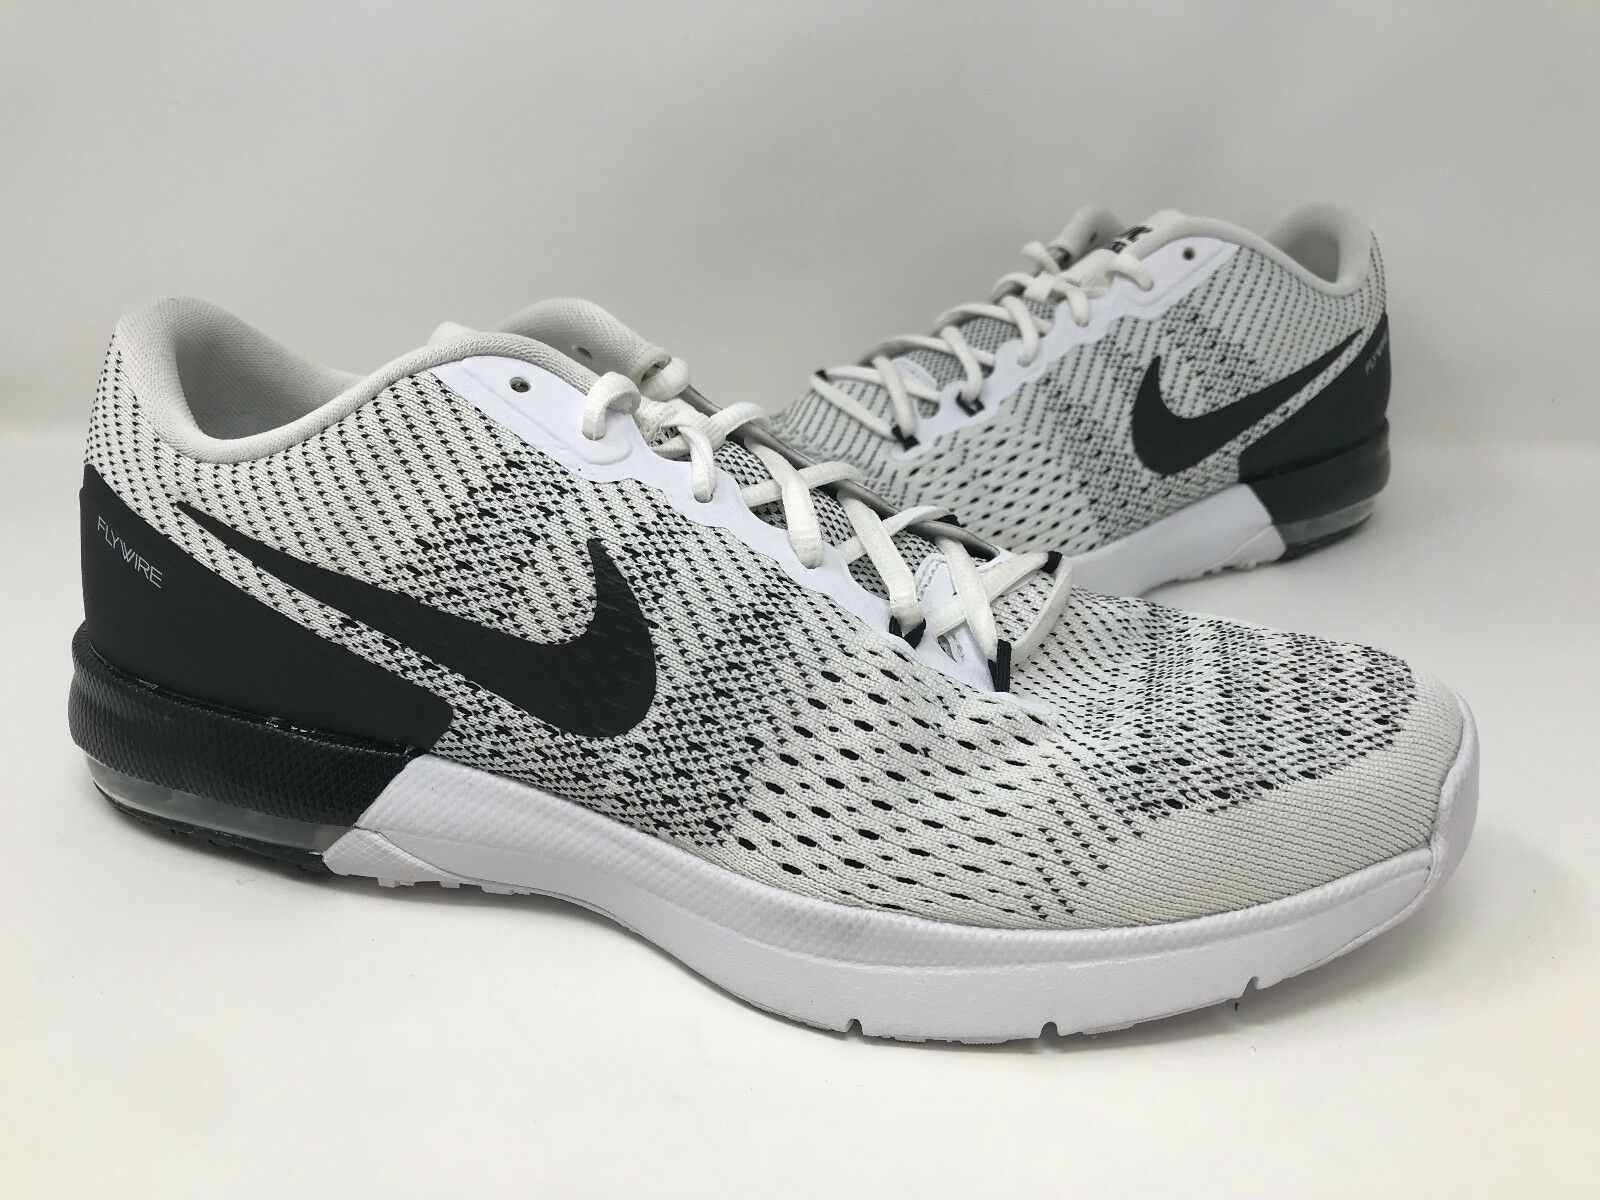 New! Men's Nike 820198-100 Air Max Typha Training Shoes White/Black A18